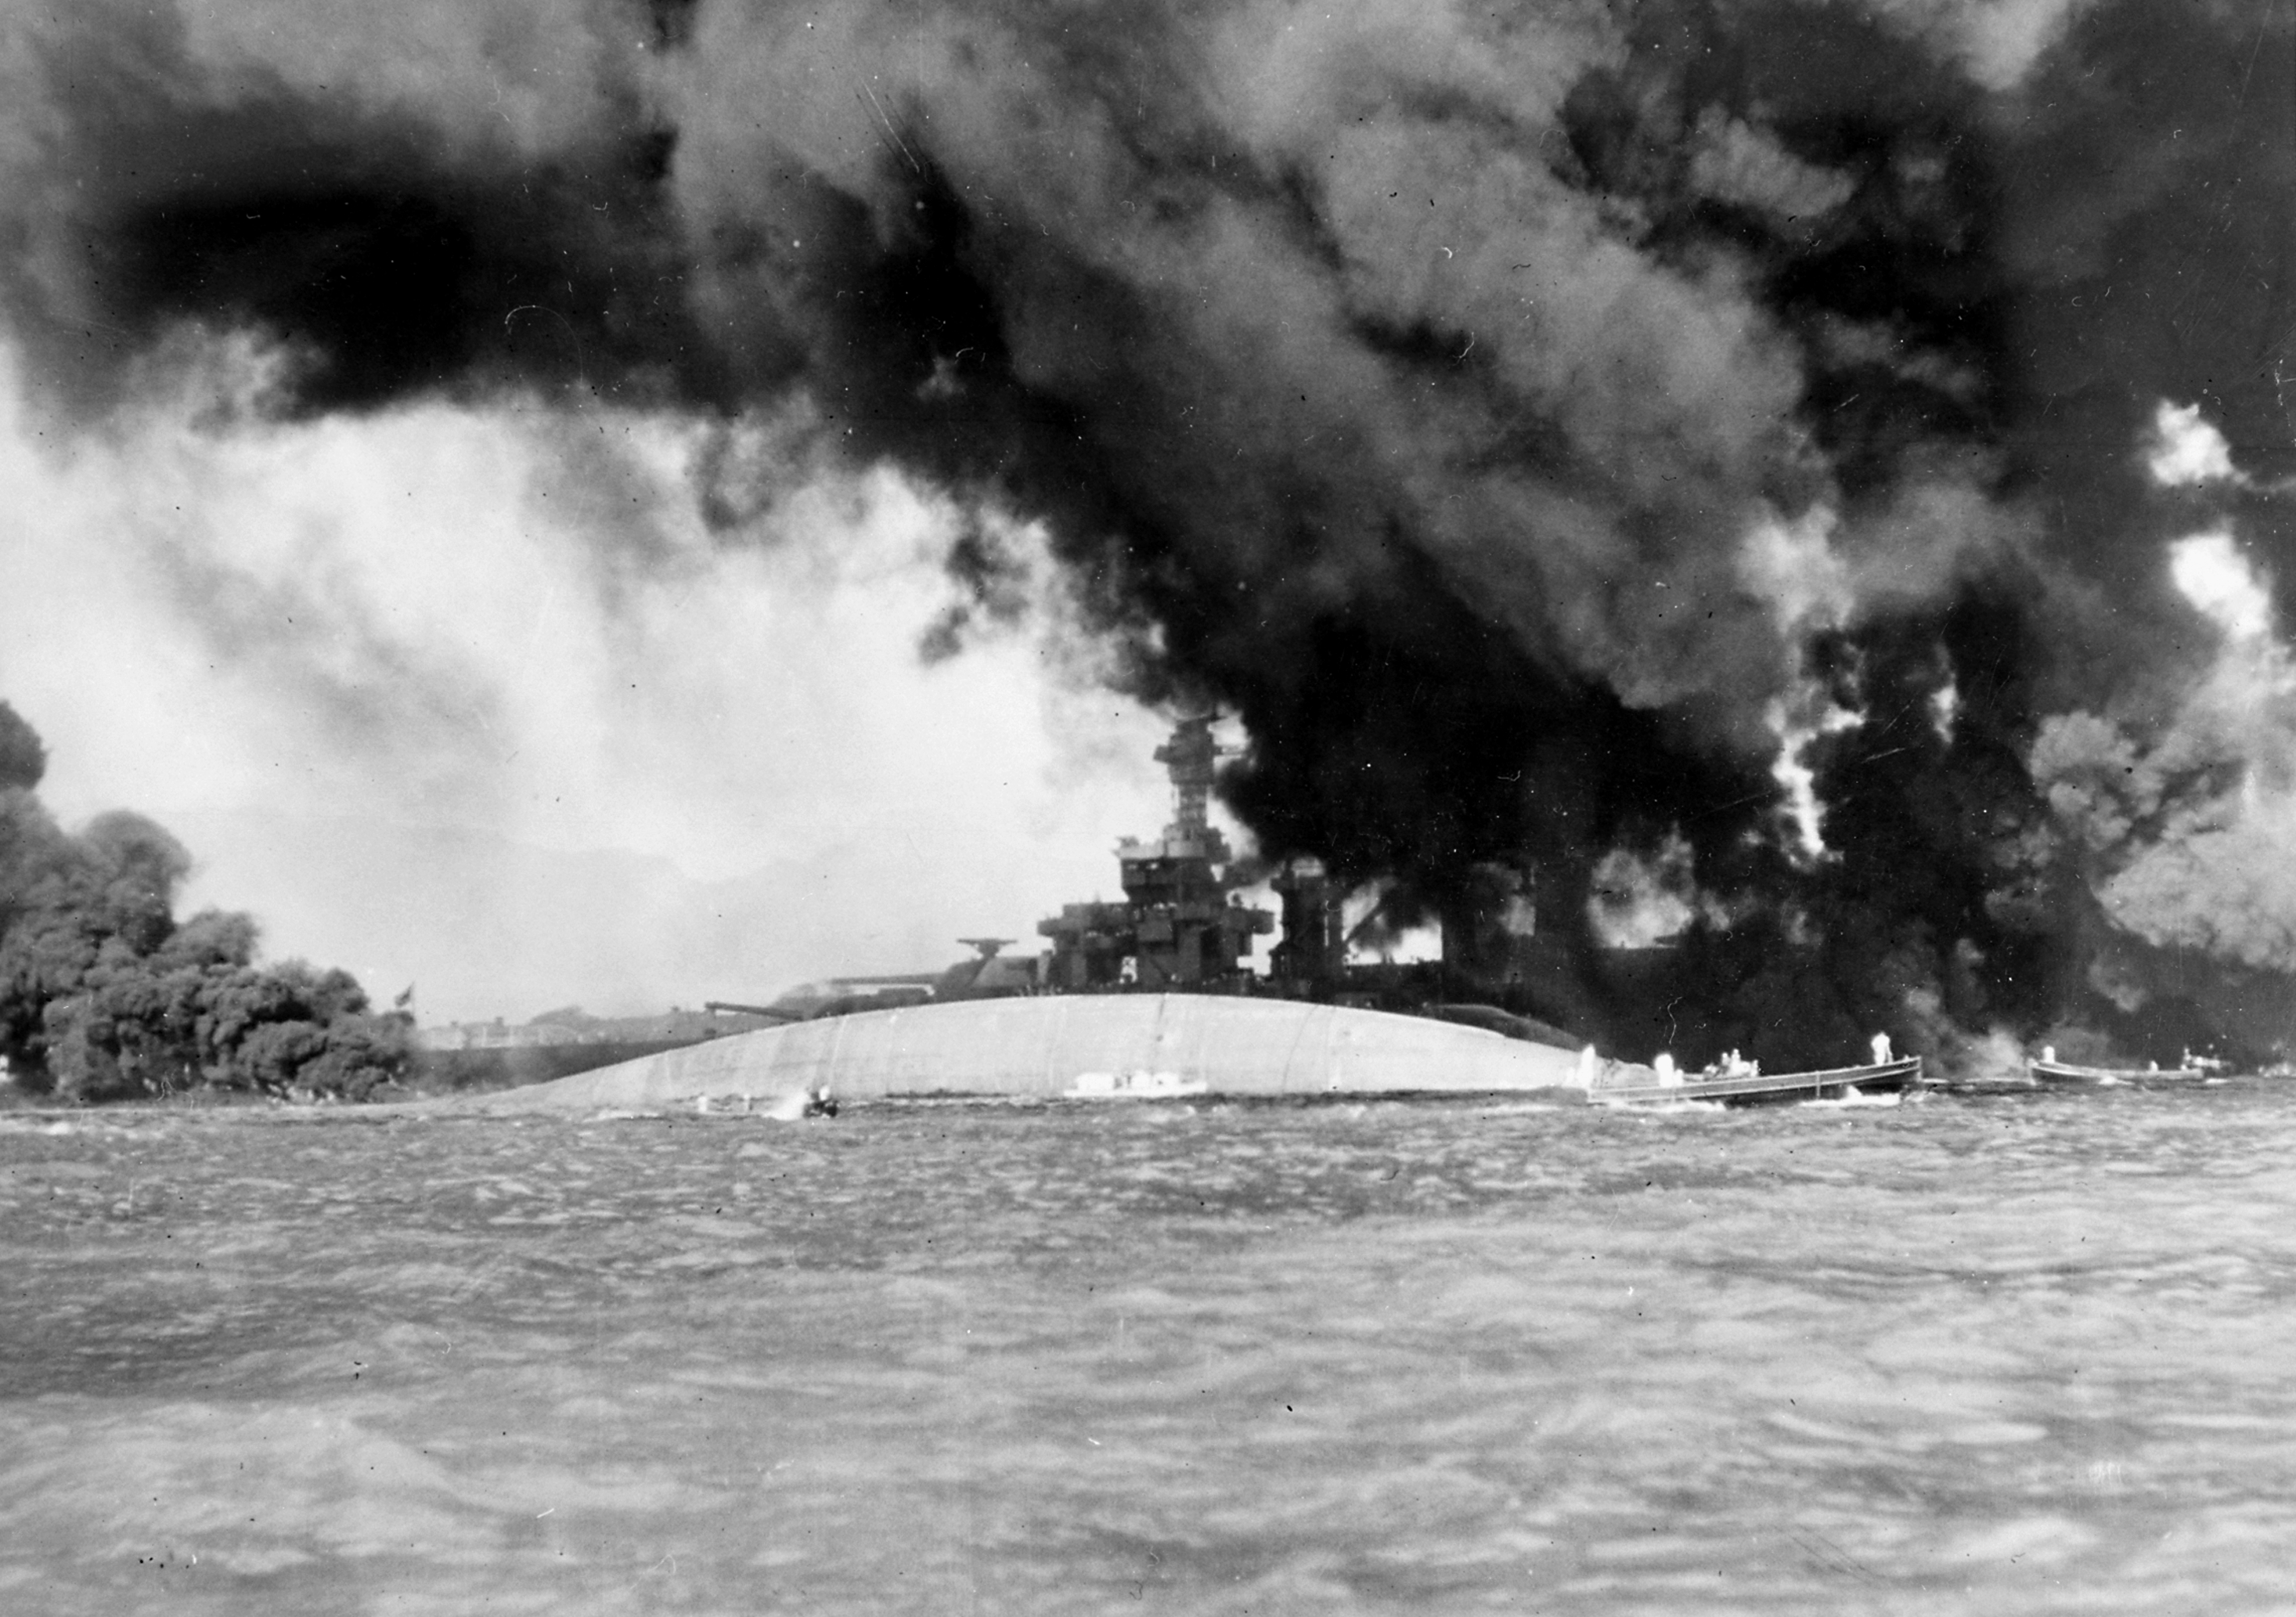 MN90: 75 Years after Pearl Harbor, Sailors Come Home